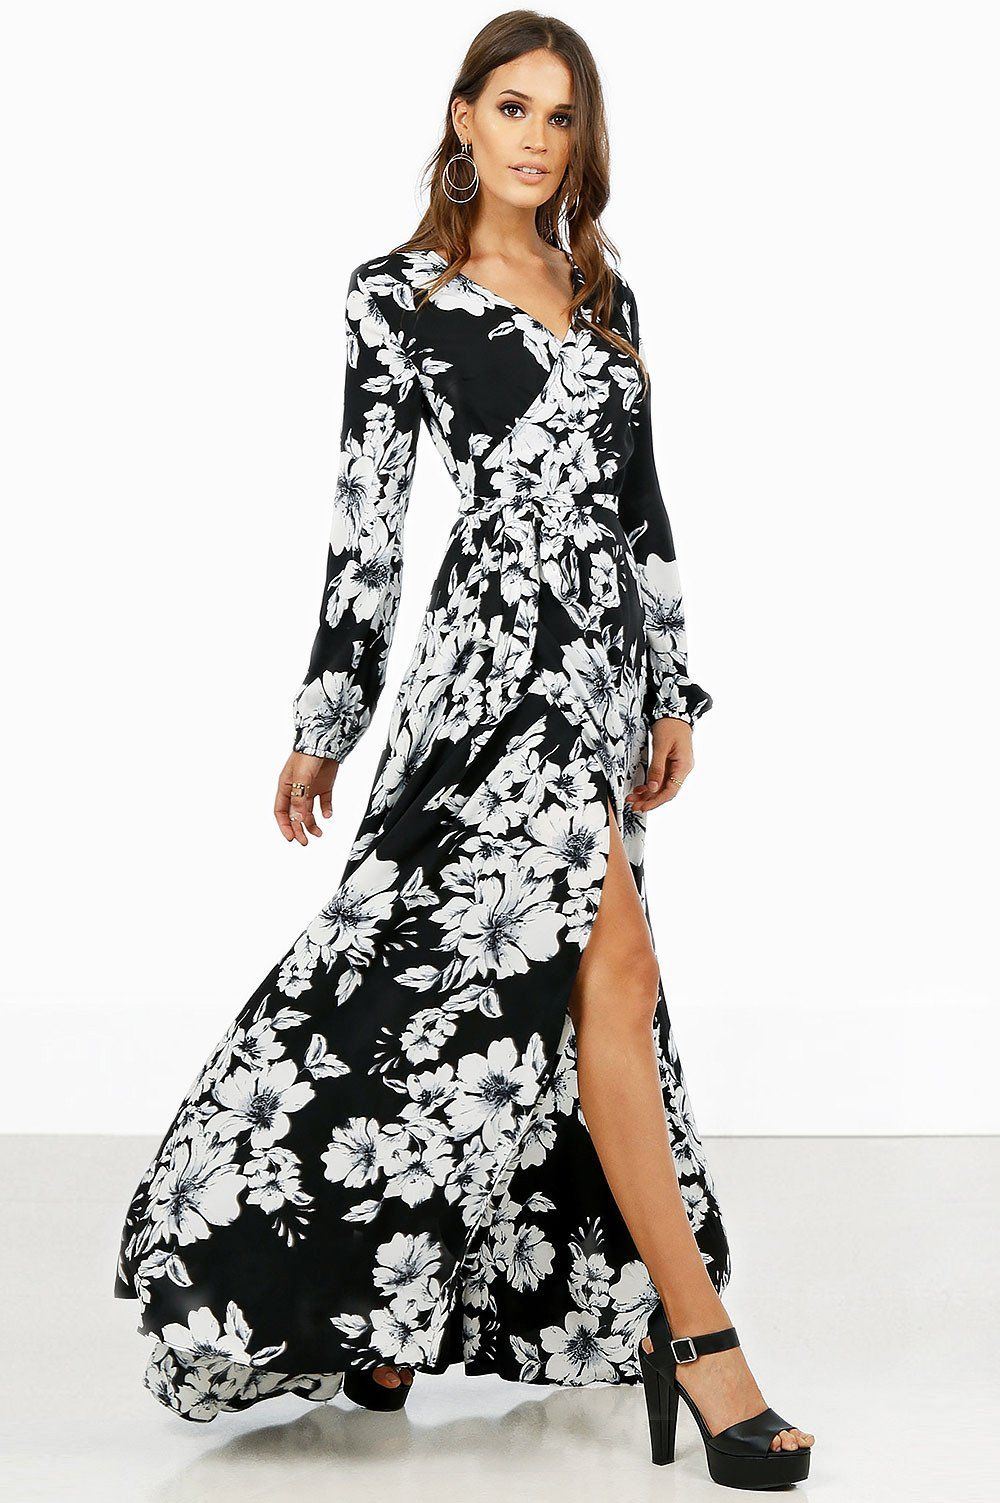 4b19be14f4b76 women's long sleeve black and white floral print wrap maxi dress. Front  view.